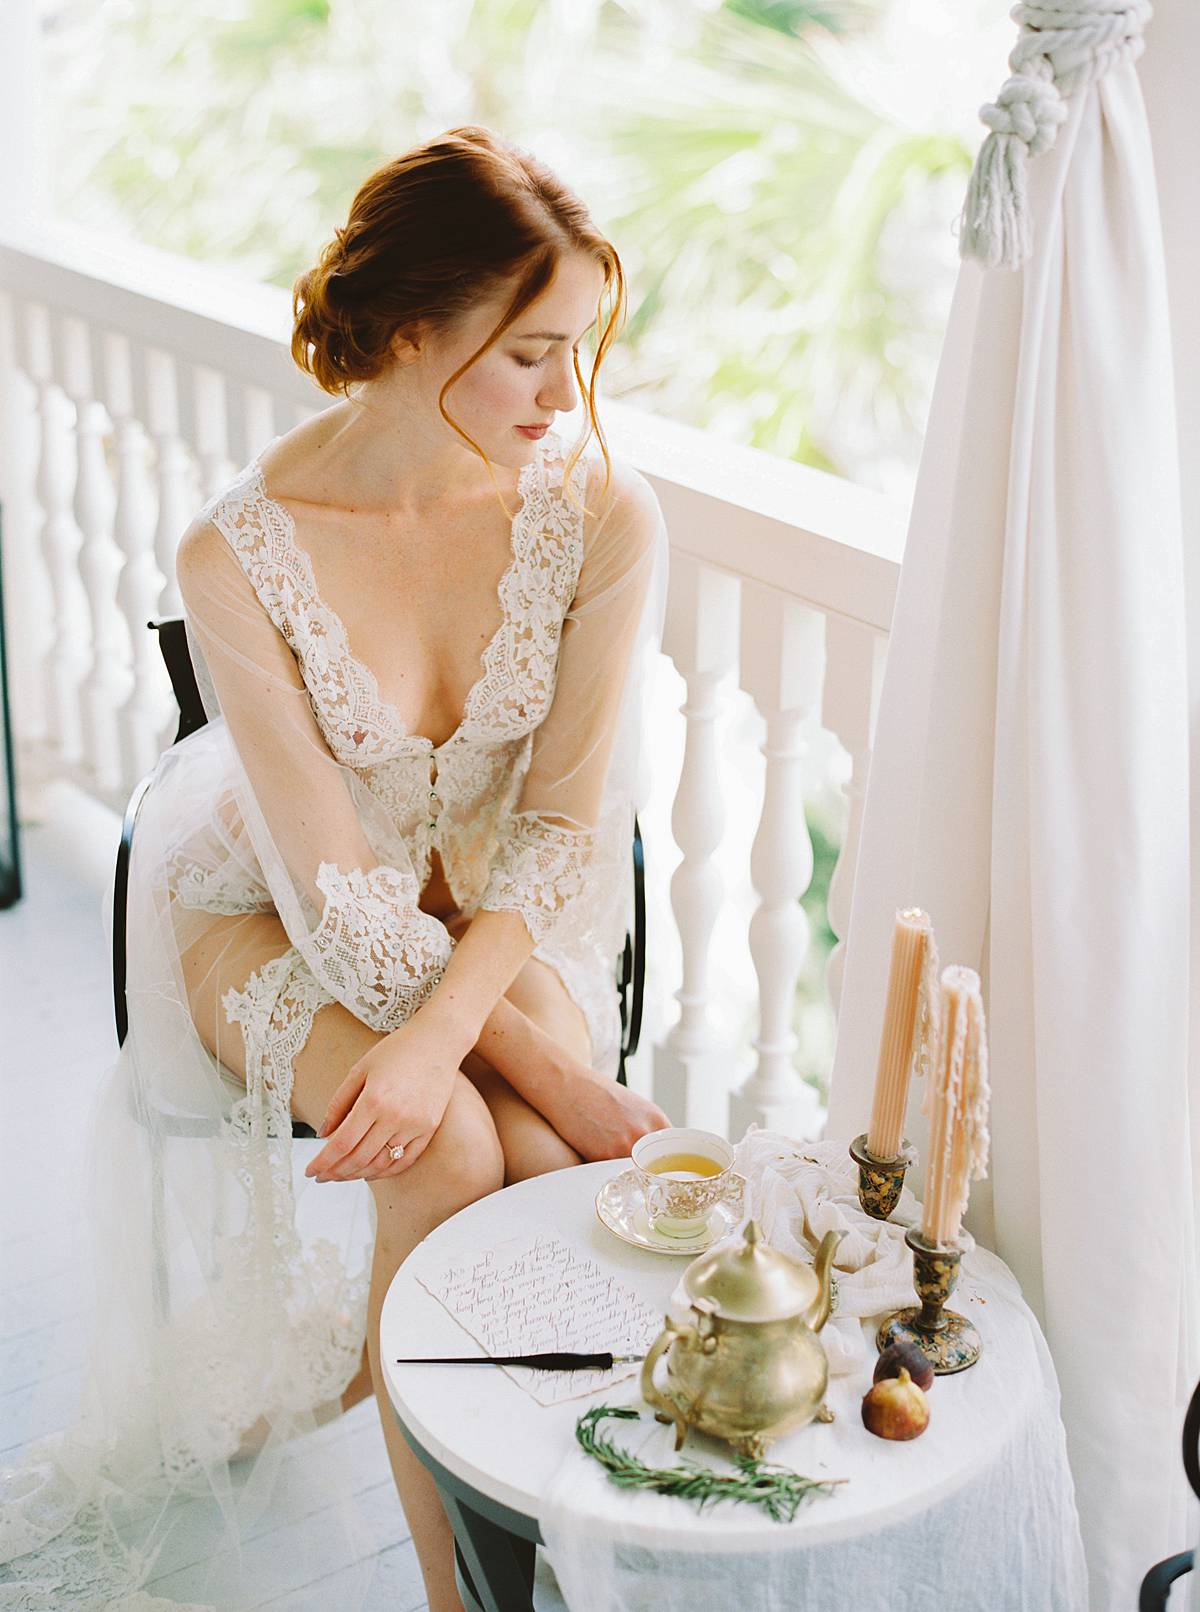 charleston wedding bridal boudoir morning getting ready at 86 cannon street on film with bride in lingerie writing love letter